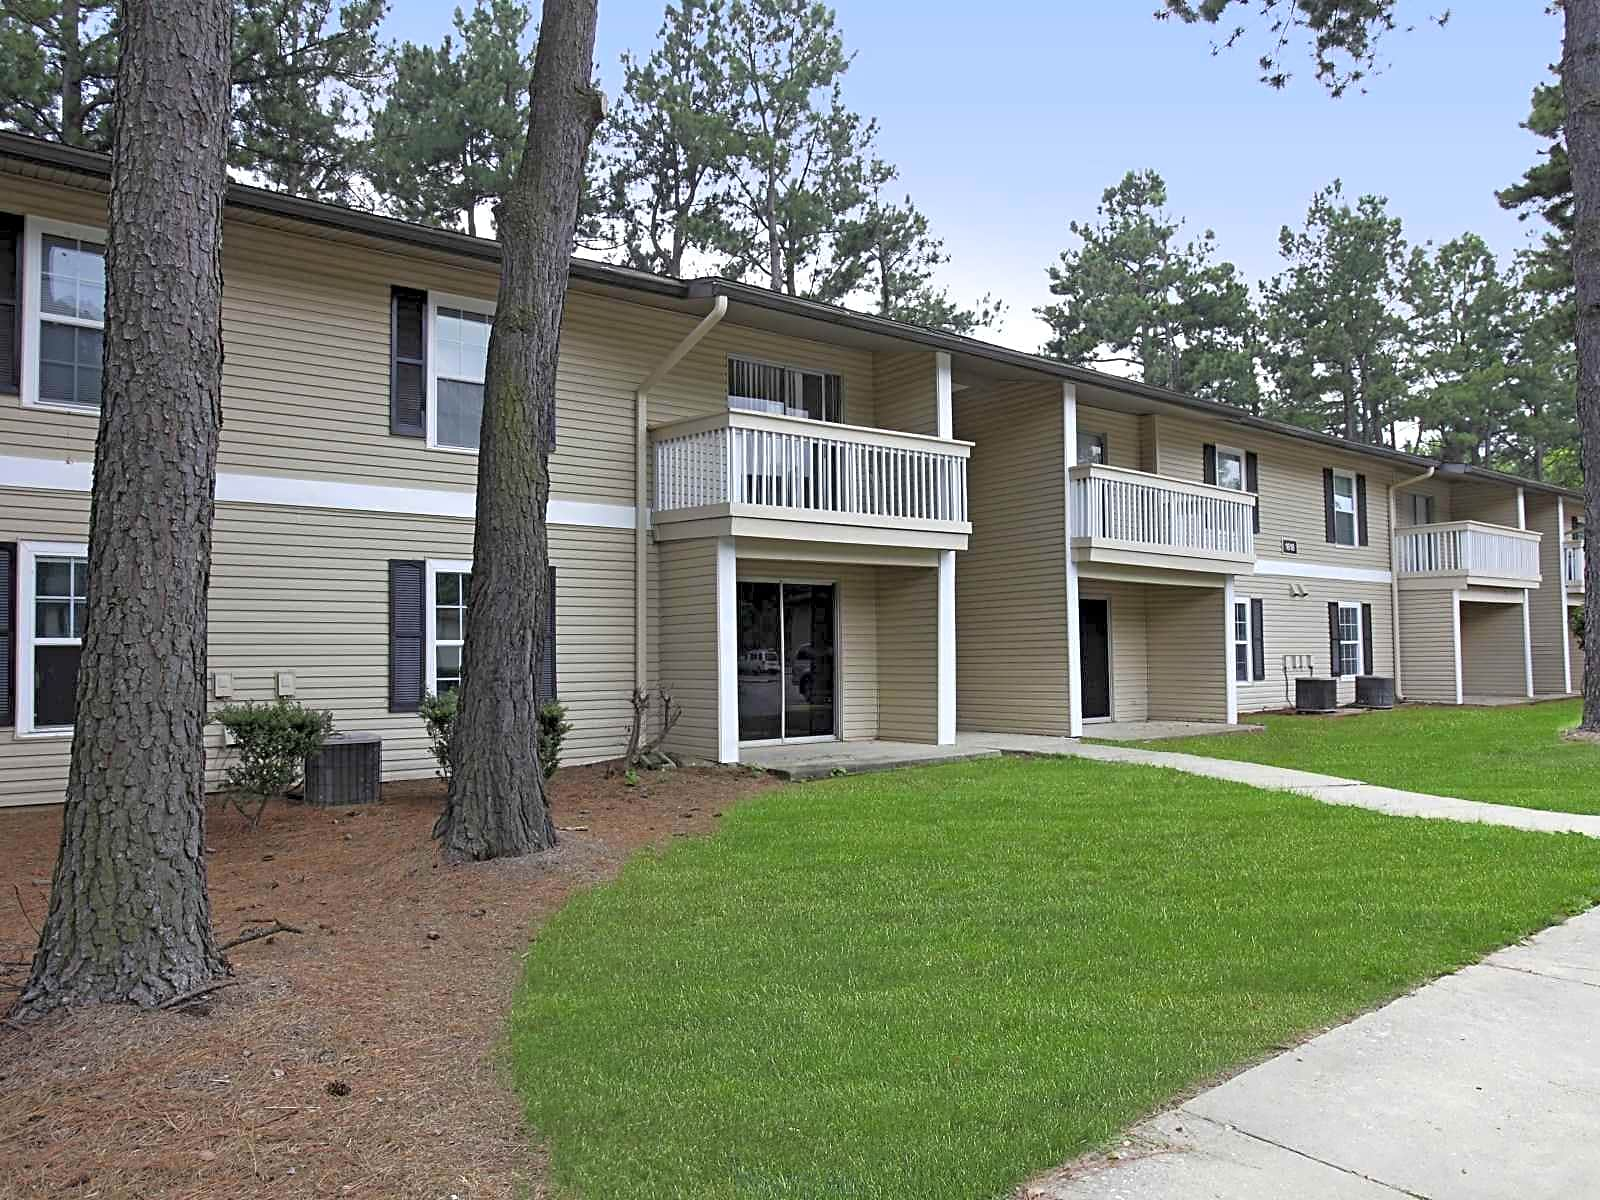 Apartments Near Guilford Pinecroft Place for Guilford College Students in Greensboro, NC